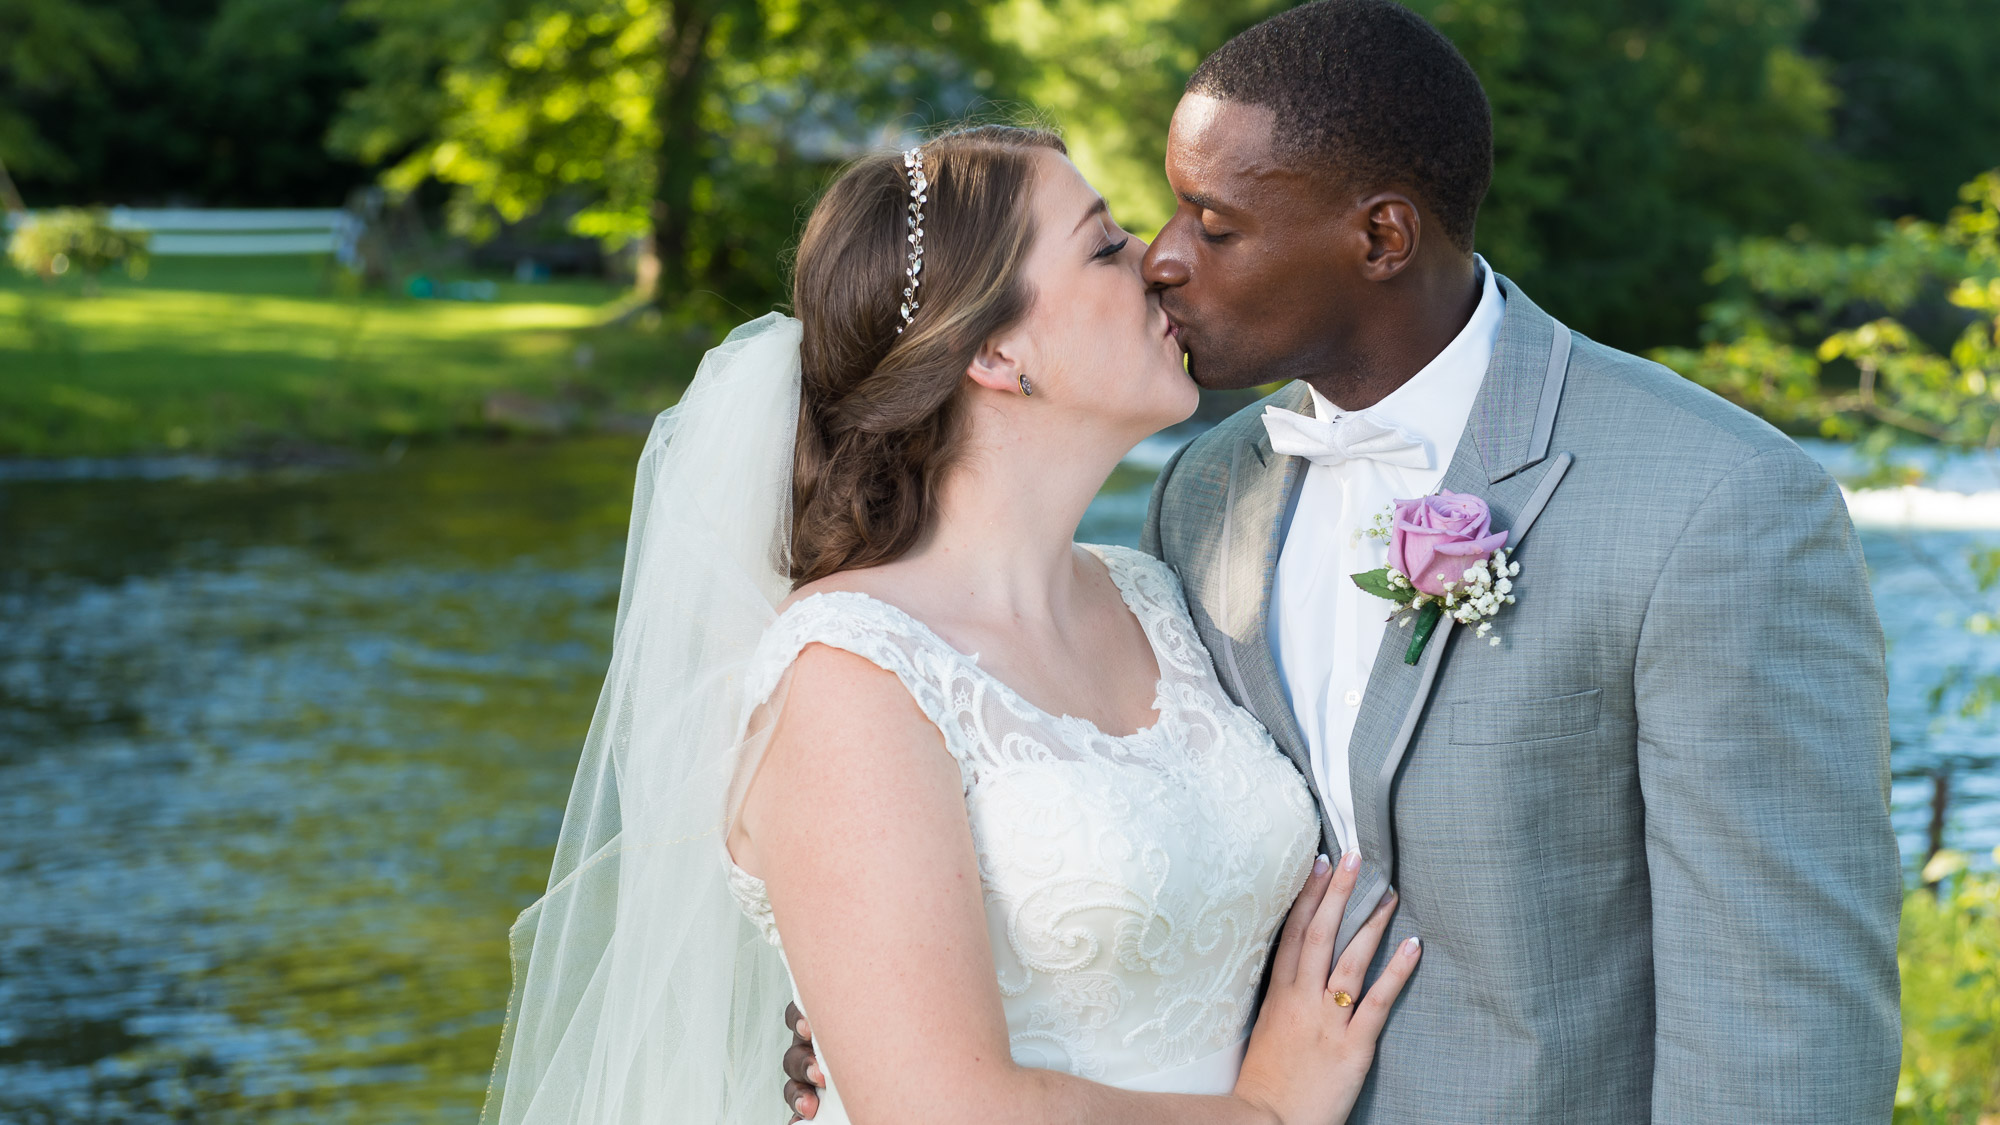 Bride_and_Groom_Portrait_By_Stream.jpg